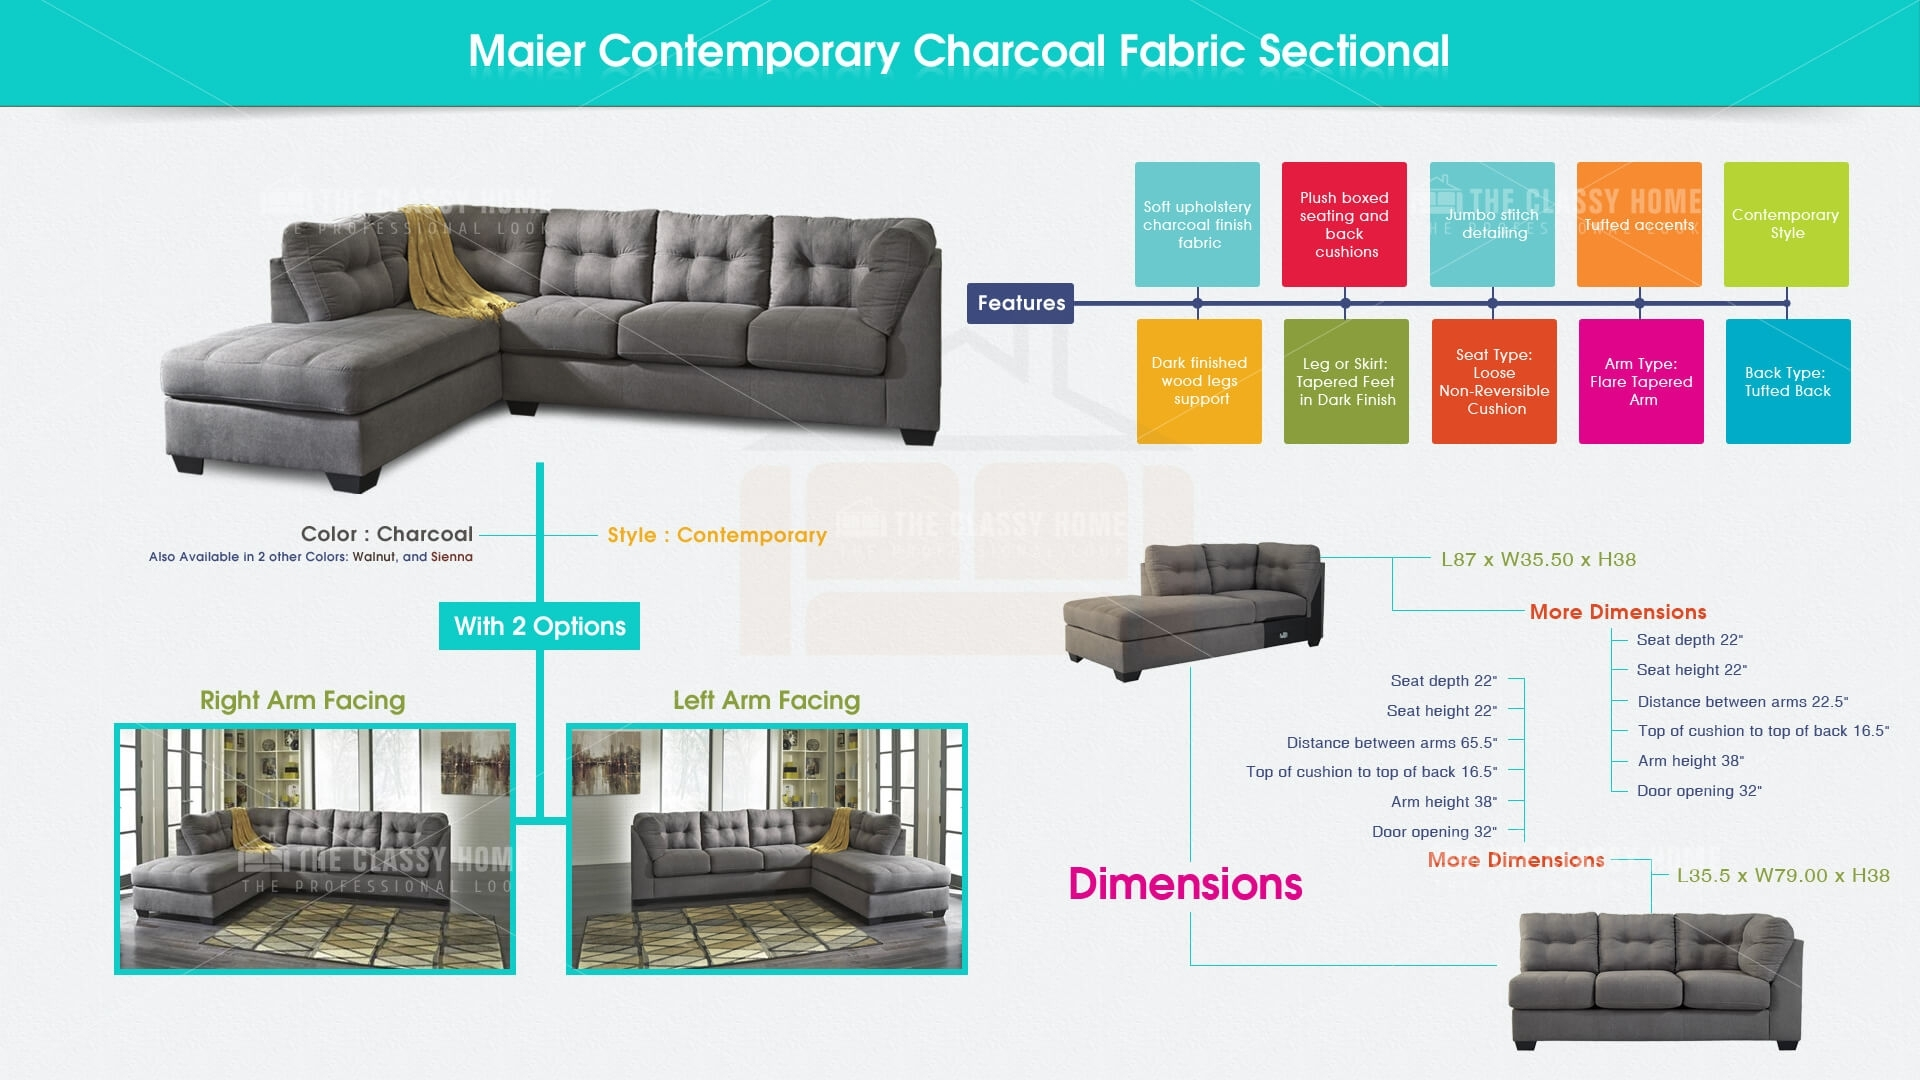 Ashley Furniture Maier Charcoal Raf Chaise Sectional | The Classy Home Intended For Lucy Grey 2 Piece Sleeper Sectionals With Raf Chaise (View 24 of 25)